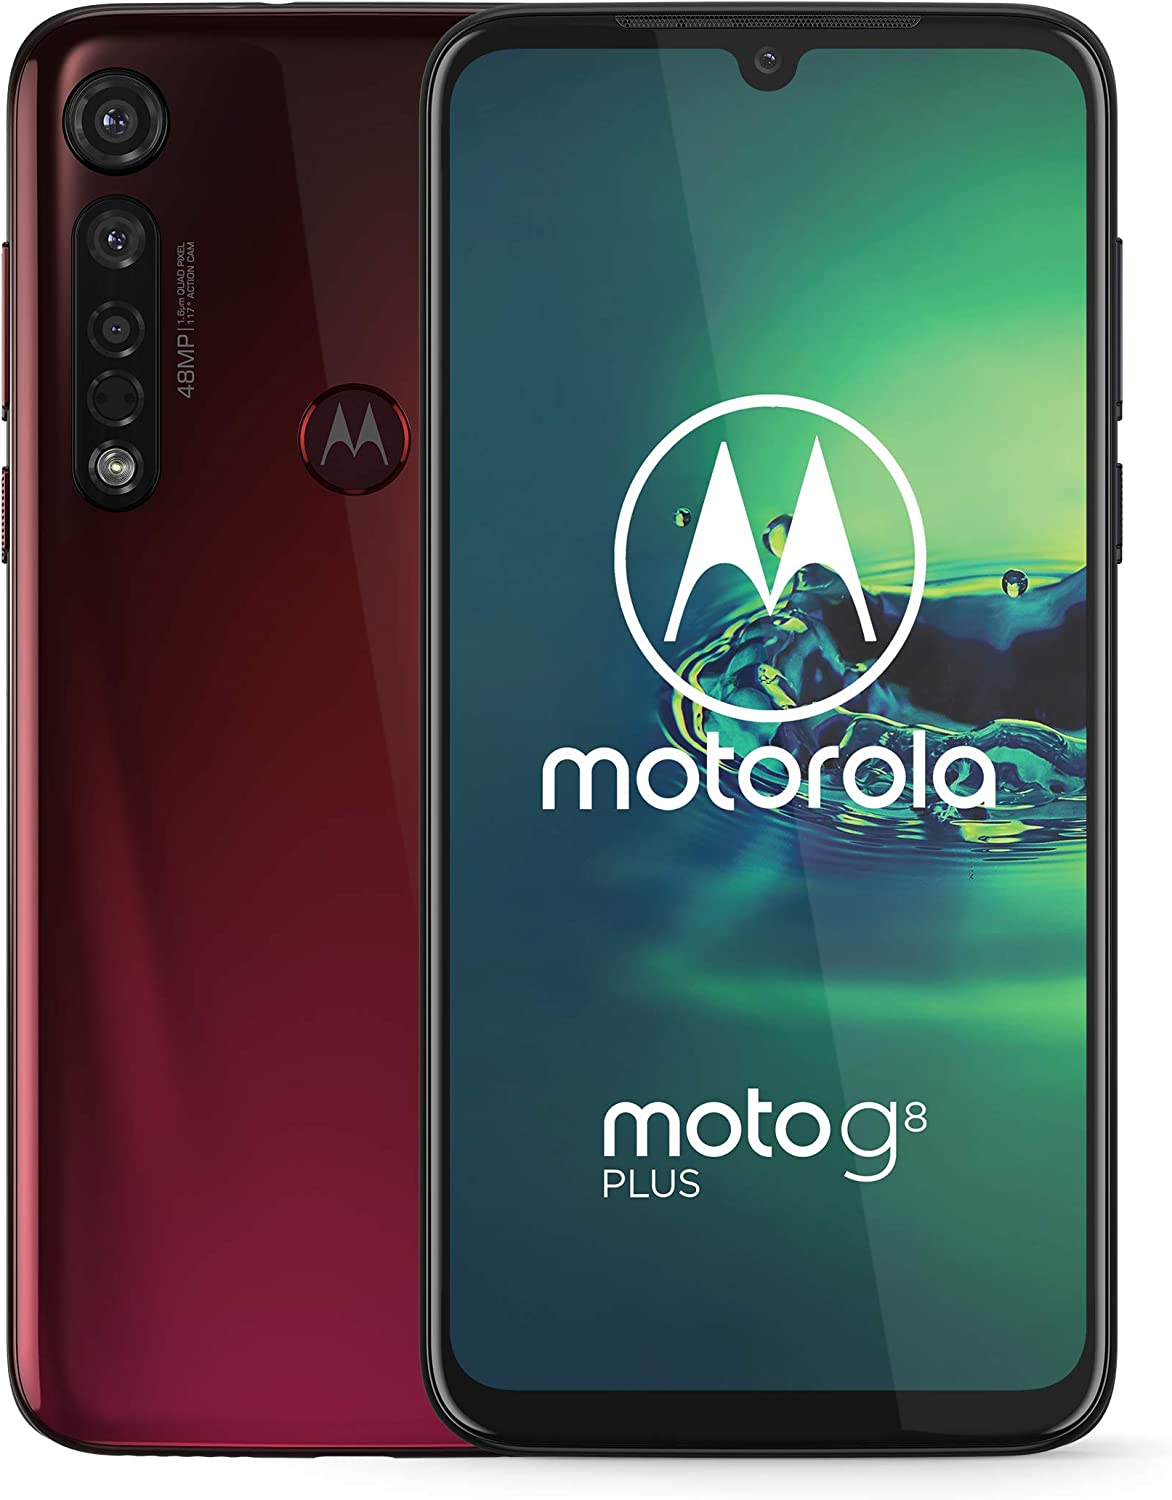 "Motorola Moto G8+ Plus (64GB, 4GB) 6.3"", Snapdragon 665, 48 MP Camera, 4000mAh Battery, Dual SIM GSM Unlocked (at&T/T-Mobile/MetroPCS/Cricket/H2O) XT2019-2 - International Version (Red, 64 GB)"